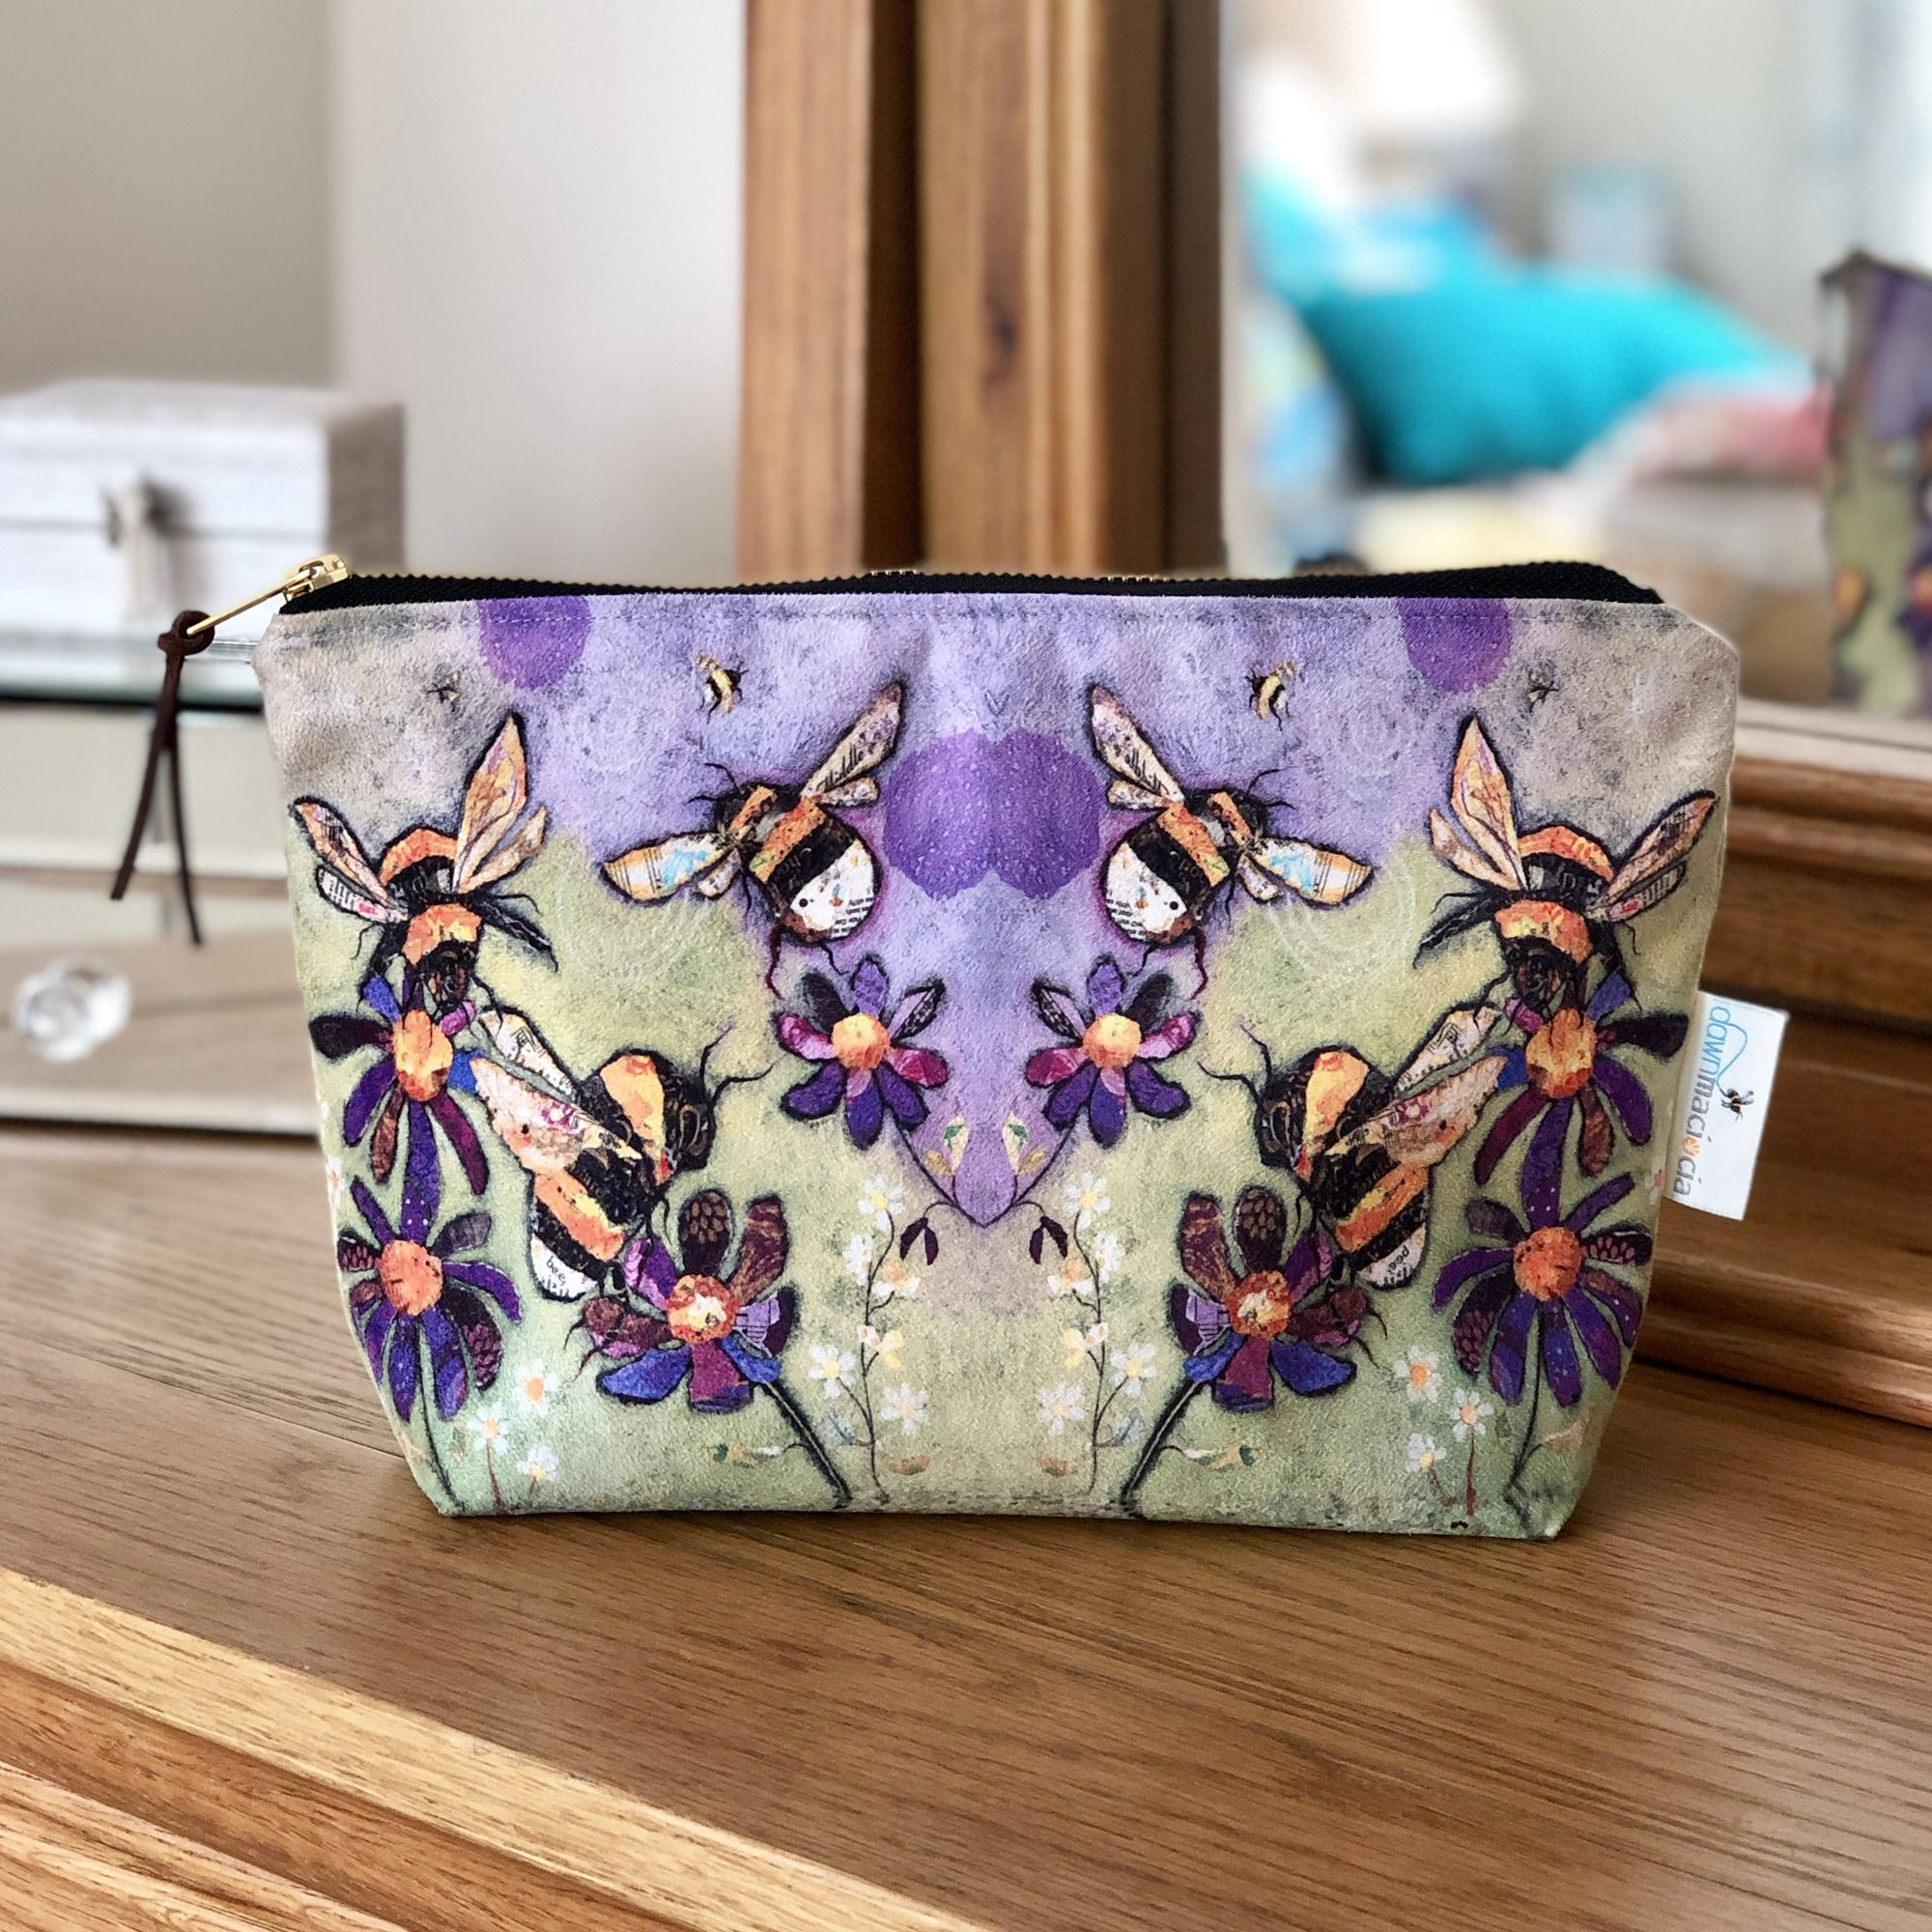 Bumble Bee Make-Up Bag Handmade in UK by Dawn Maciocia